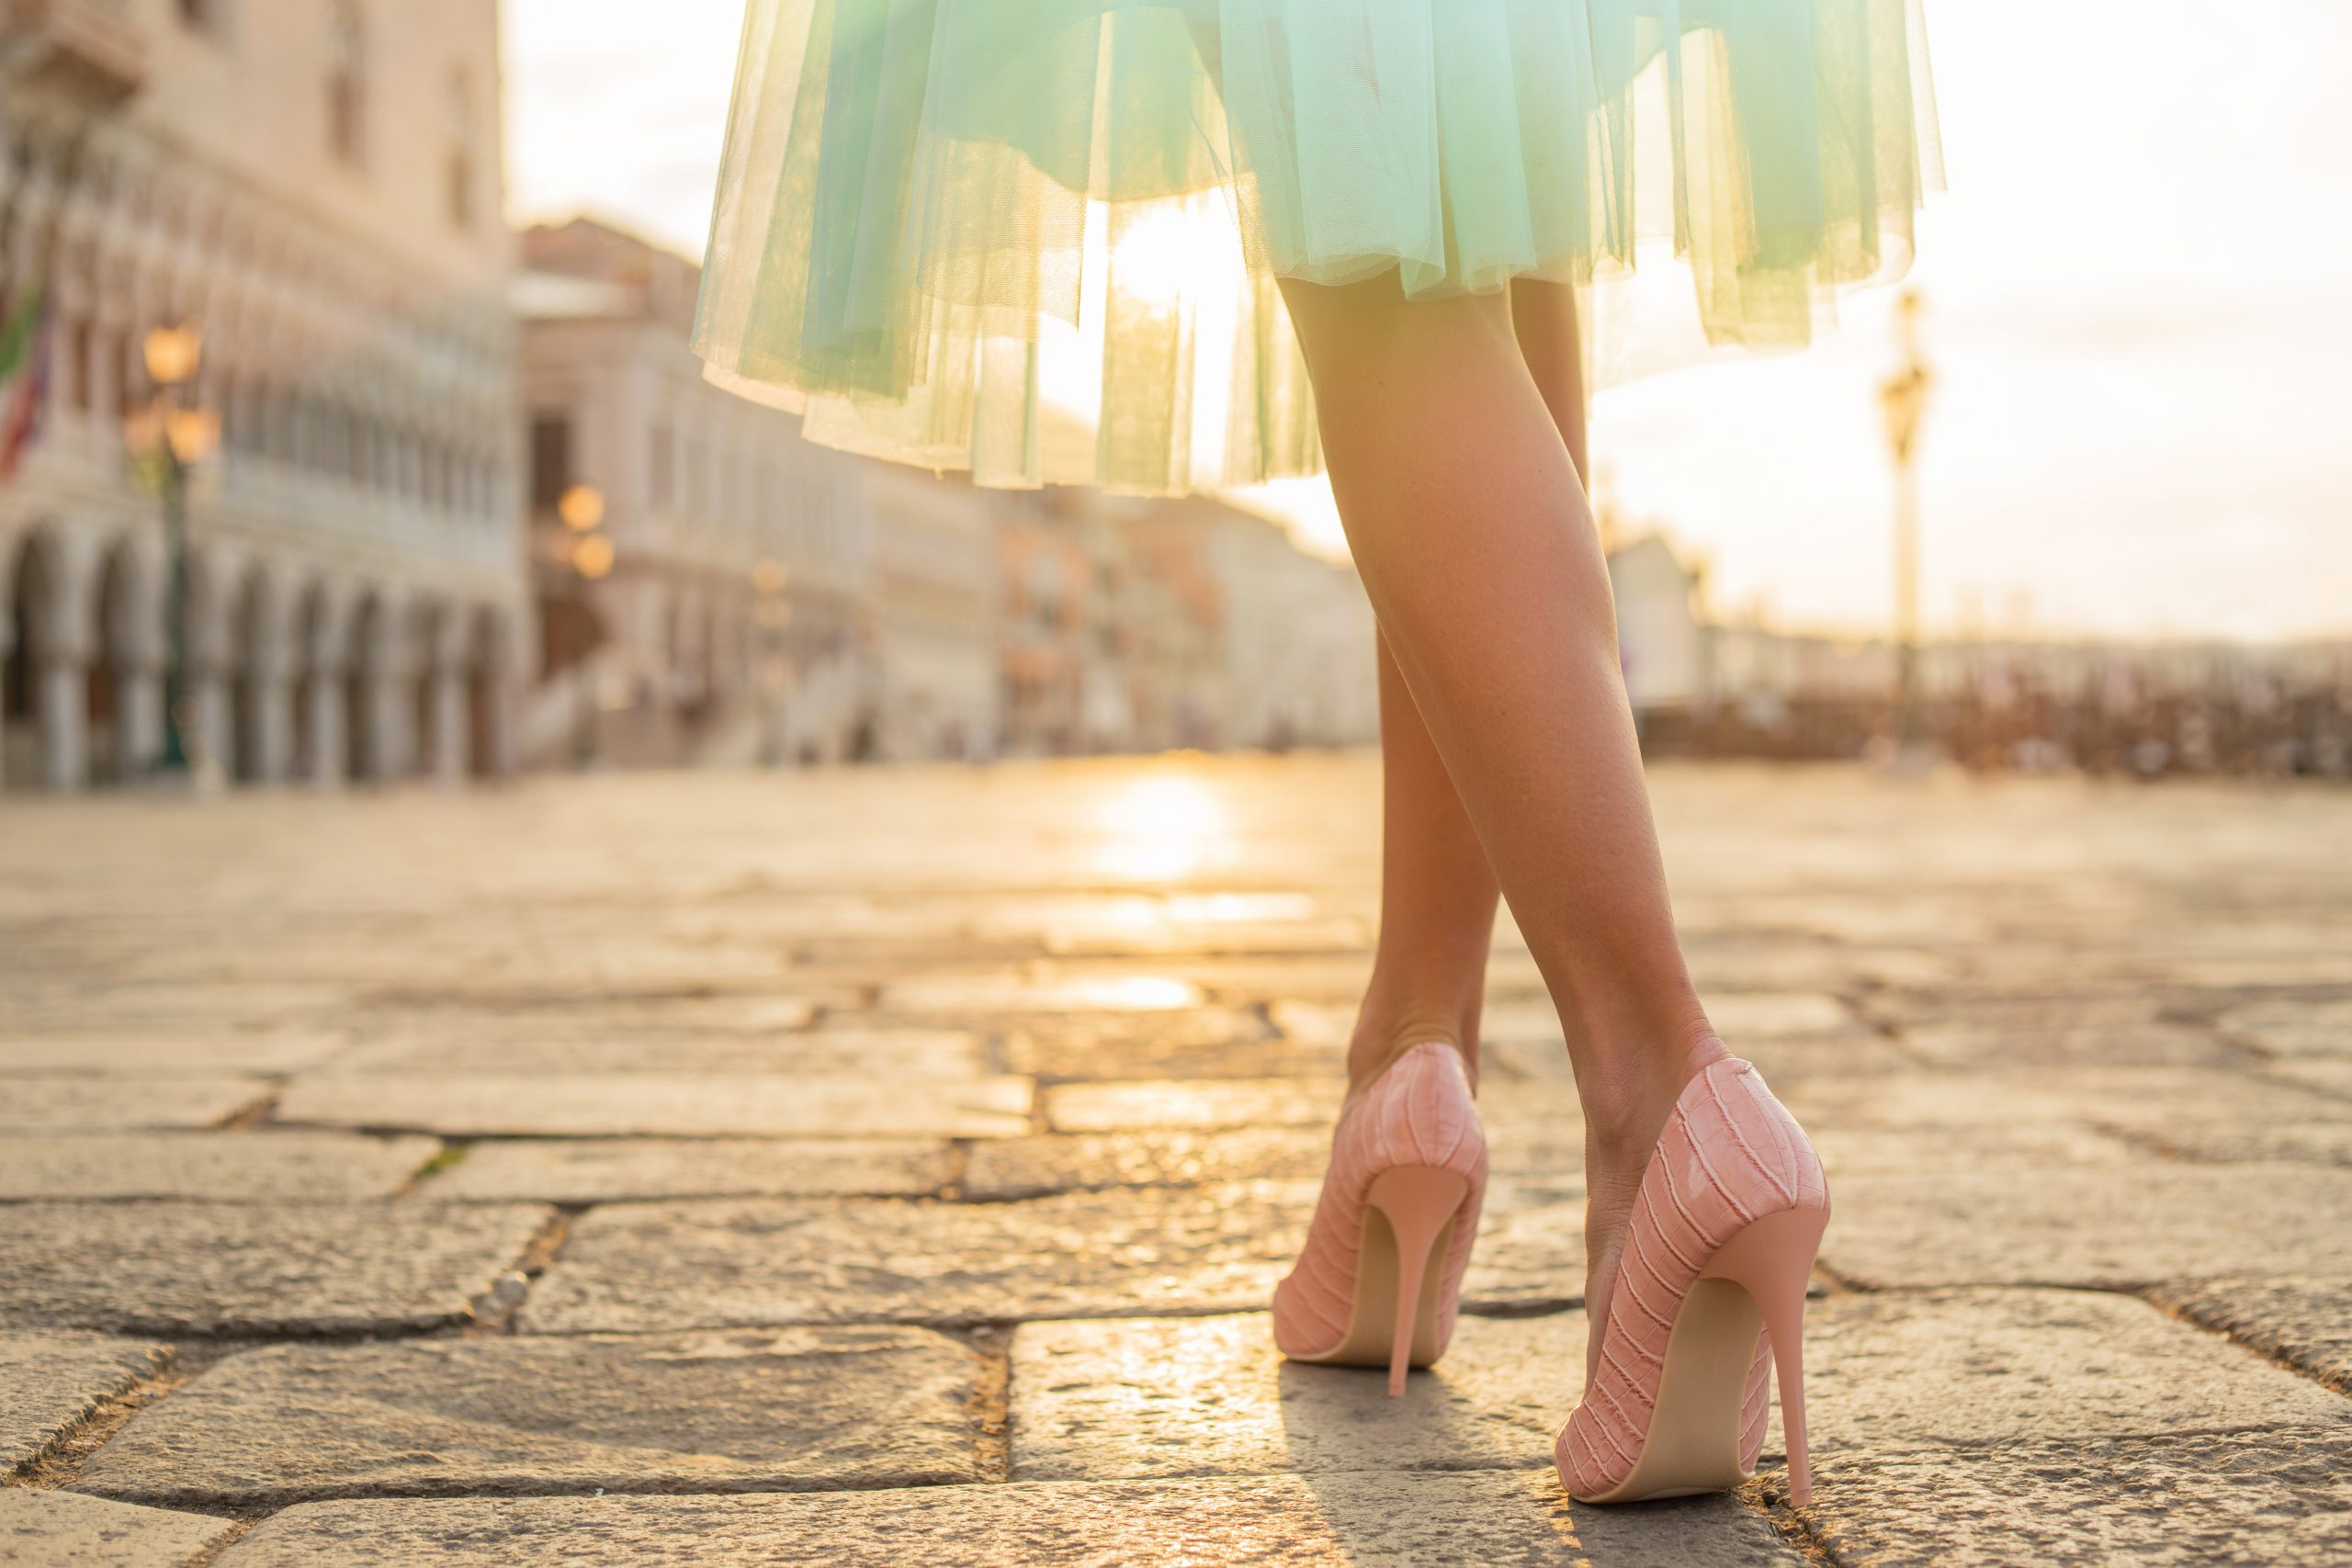 How to Enjoy Wearing High-Heeled Shoes without Pain